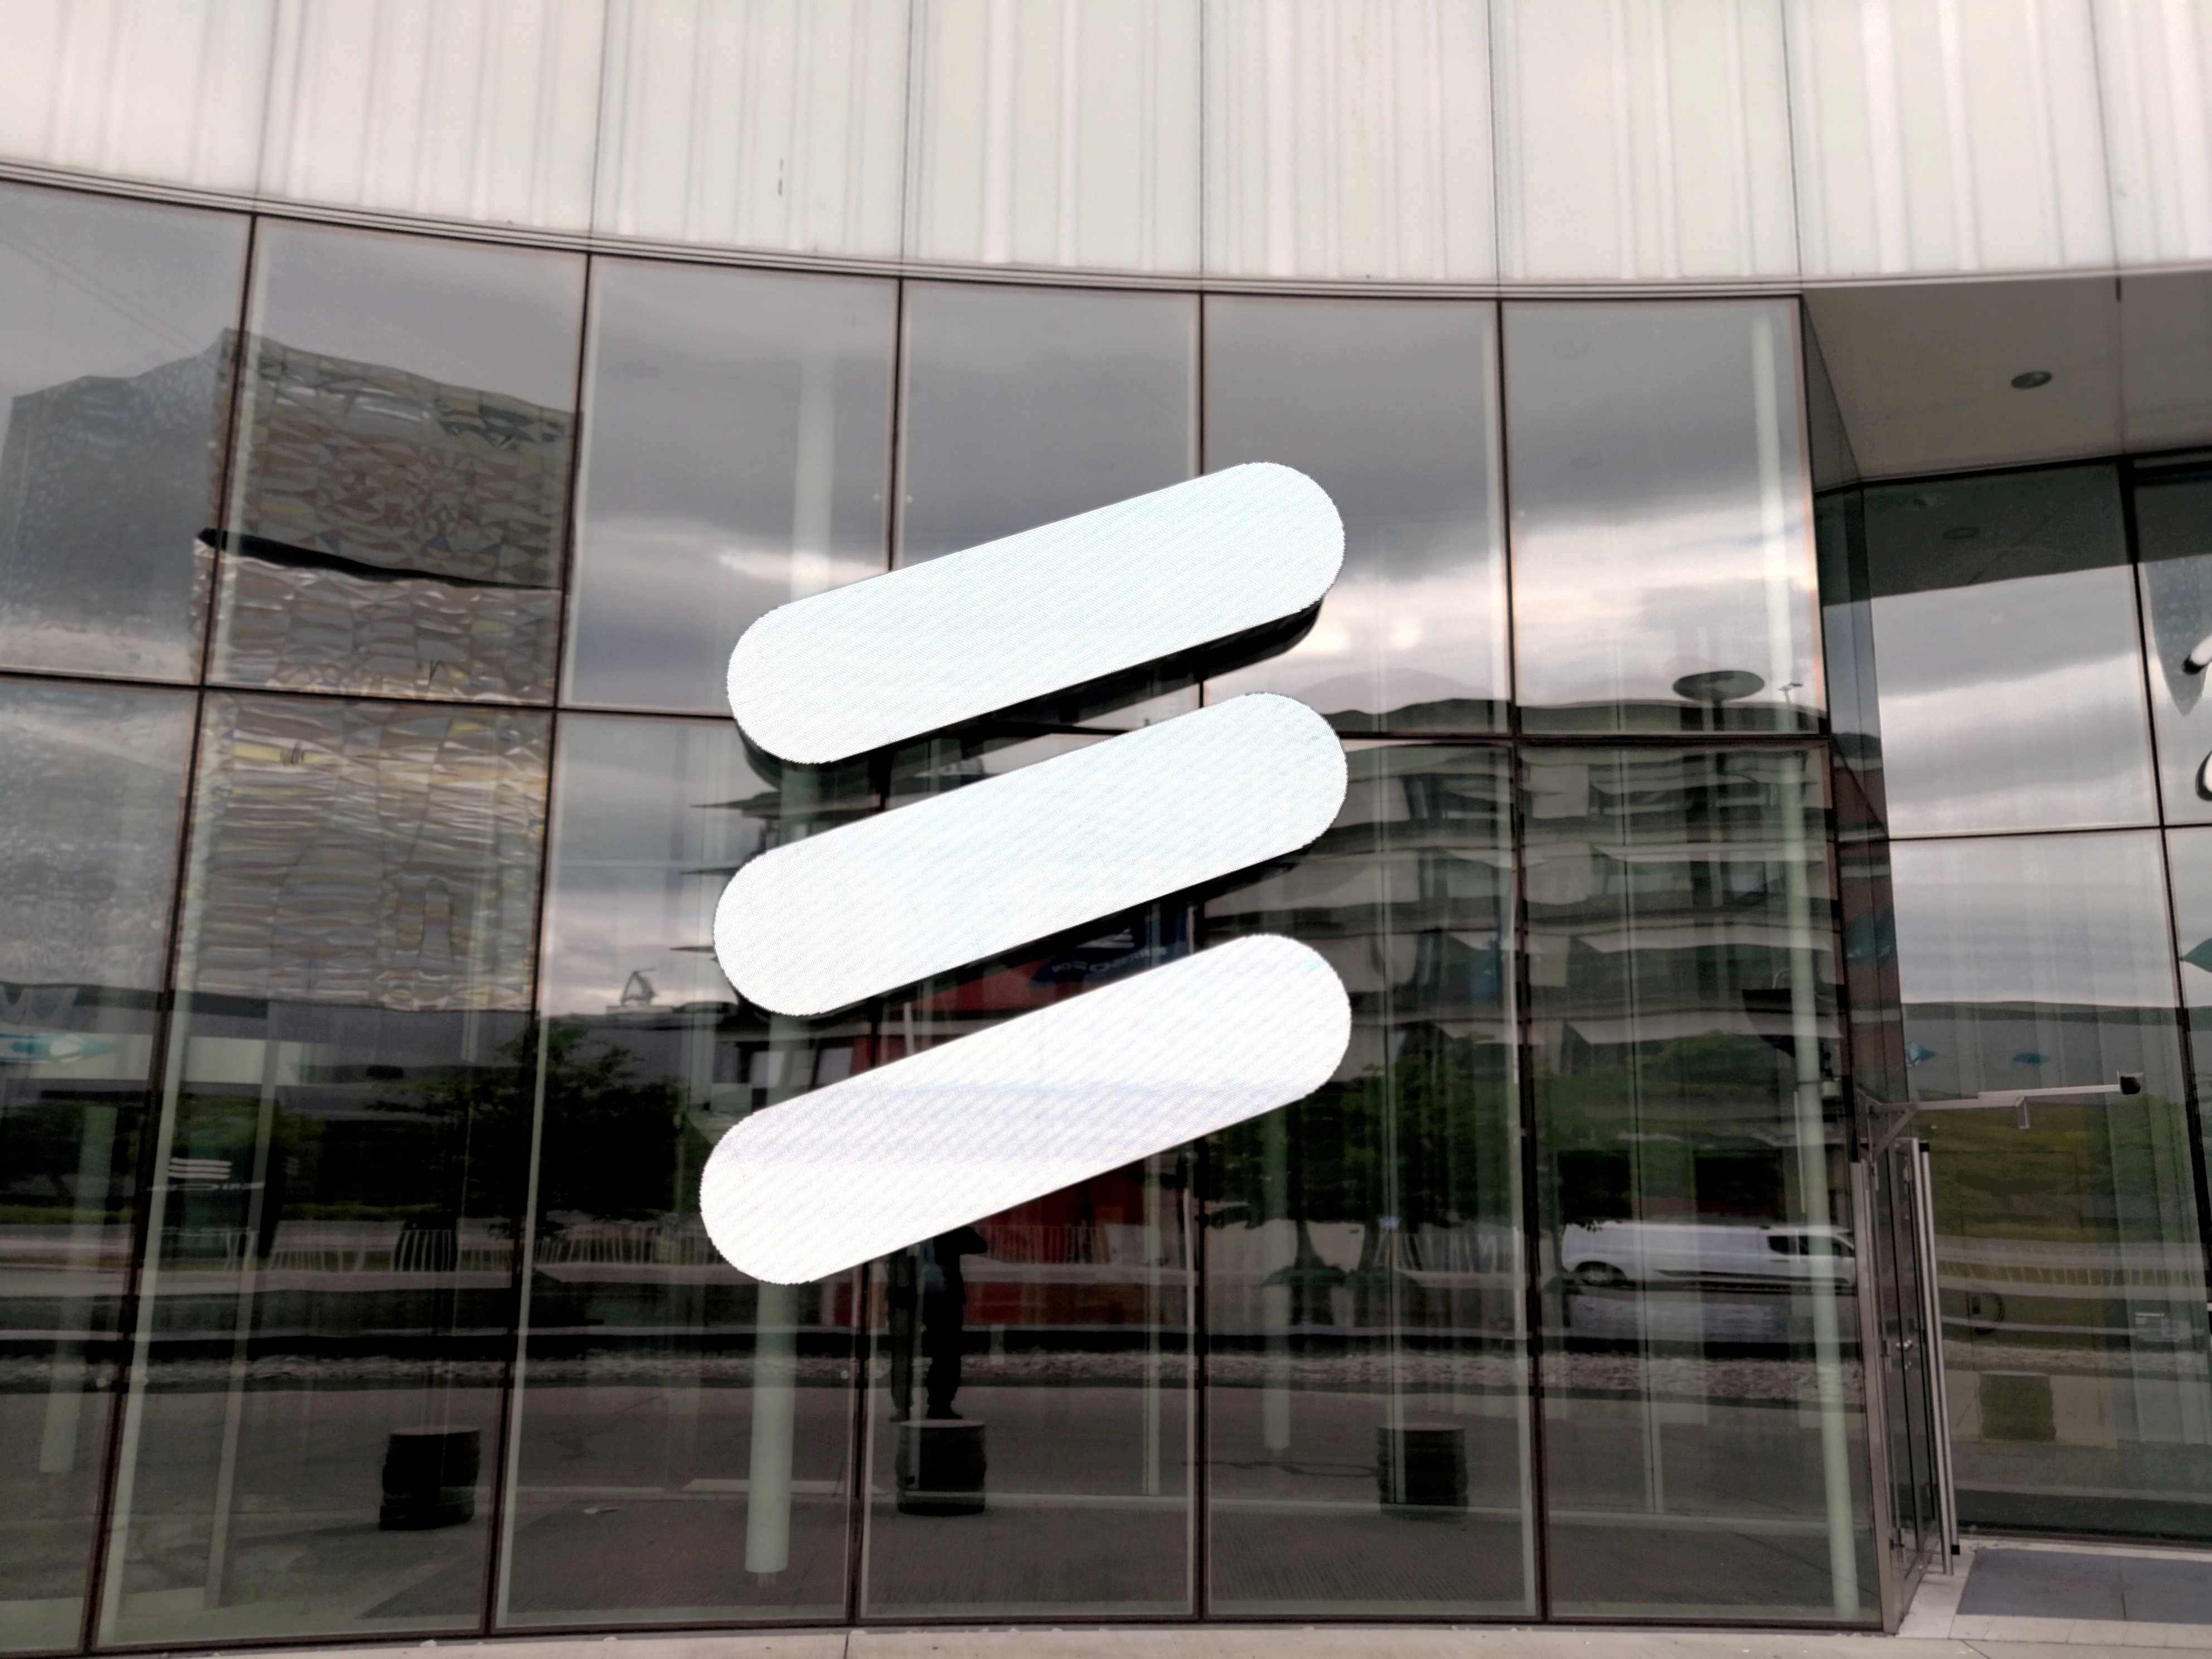 Ericsson logo is seen at its headquarters in Stockholm, Sweden June 14, 2018. REUTERS/Olof Swahnberg